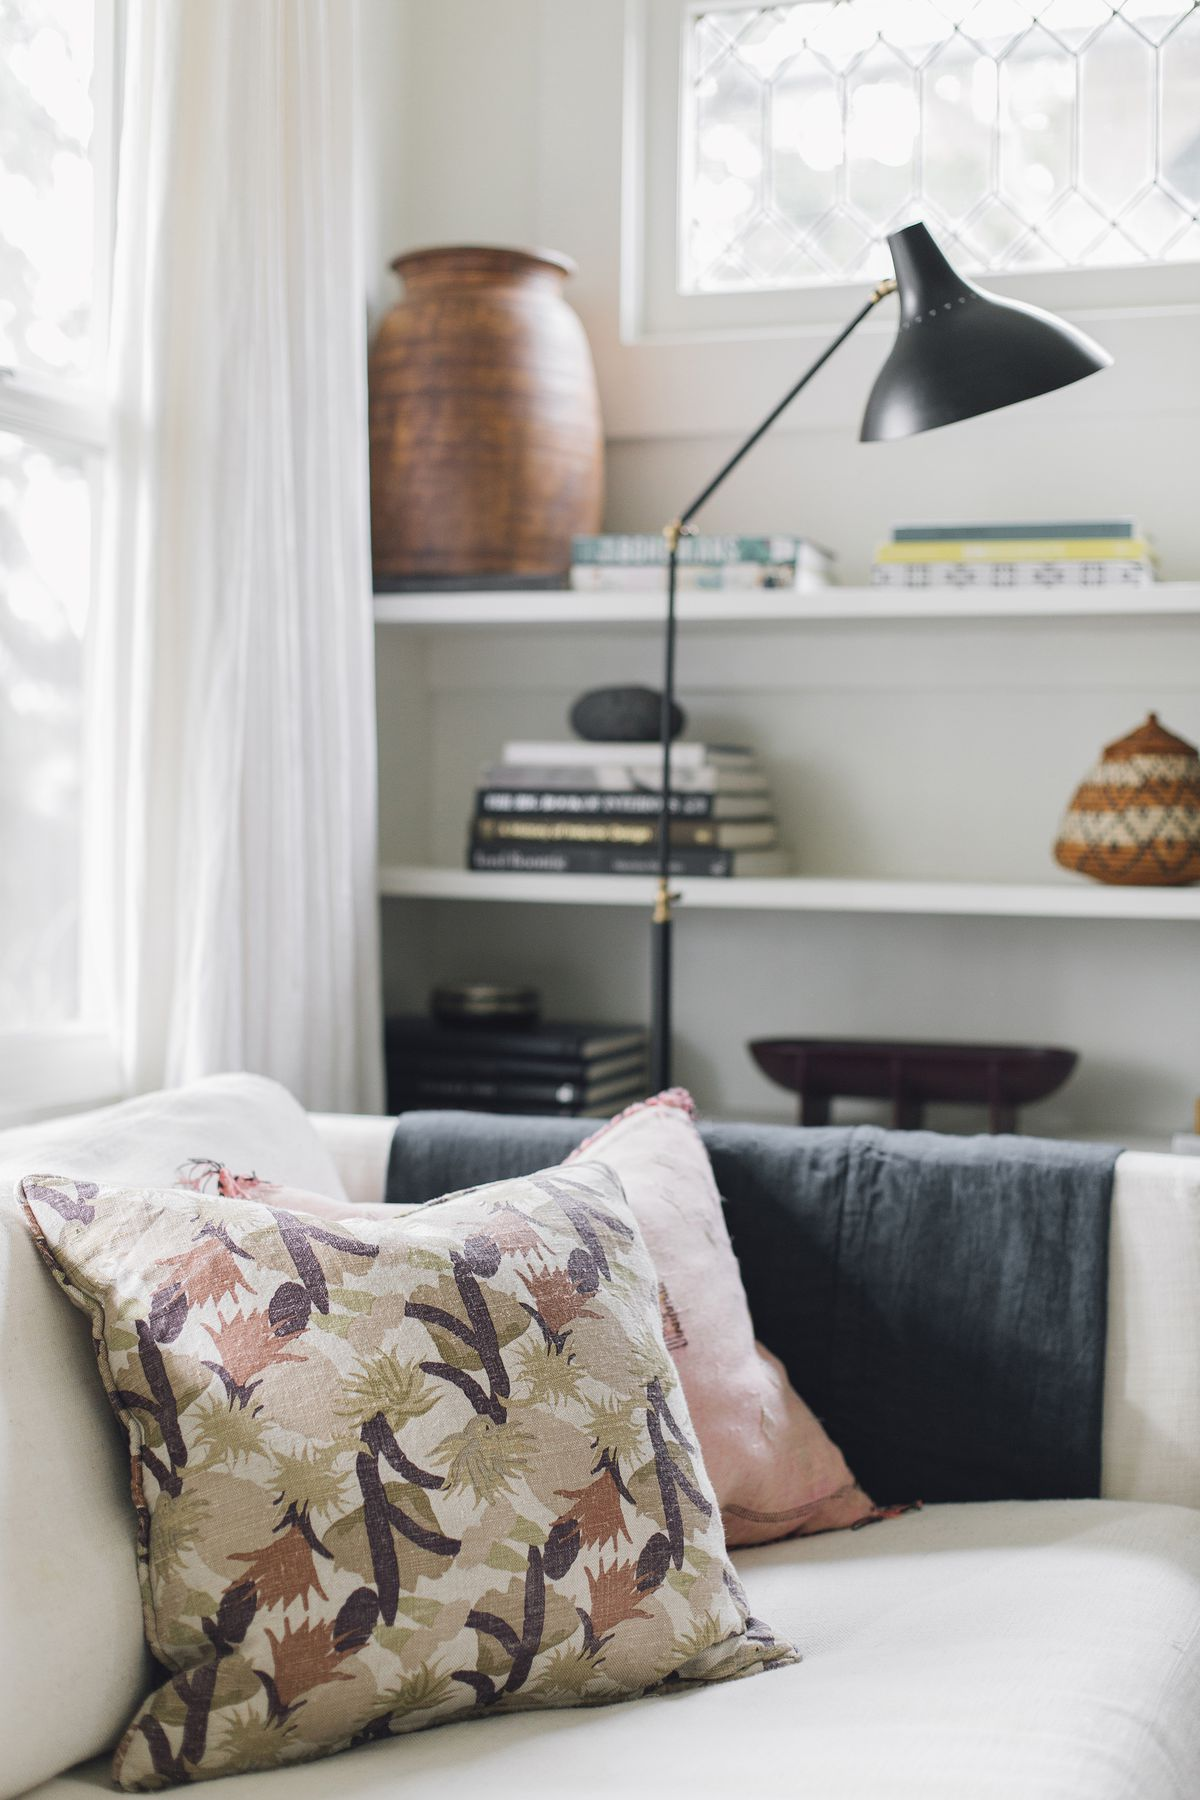 The corner of a living room. There is a couch that is white with multiple assorted pillows. There is a black floor-lamp. There are shelves with various objects.